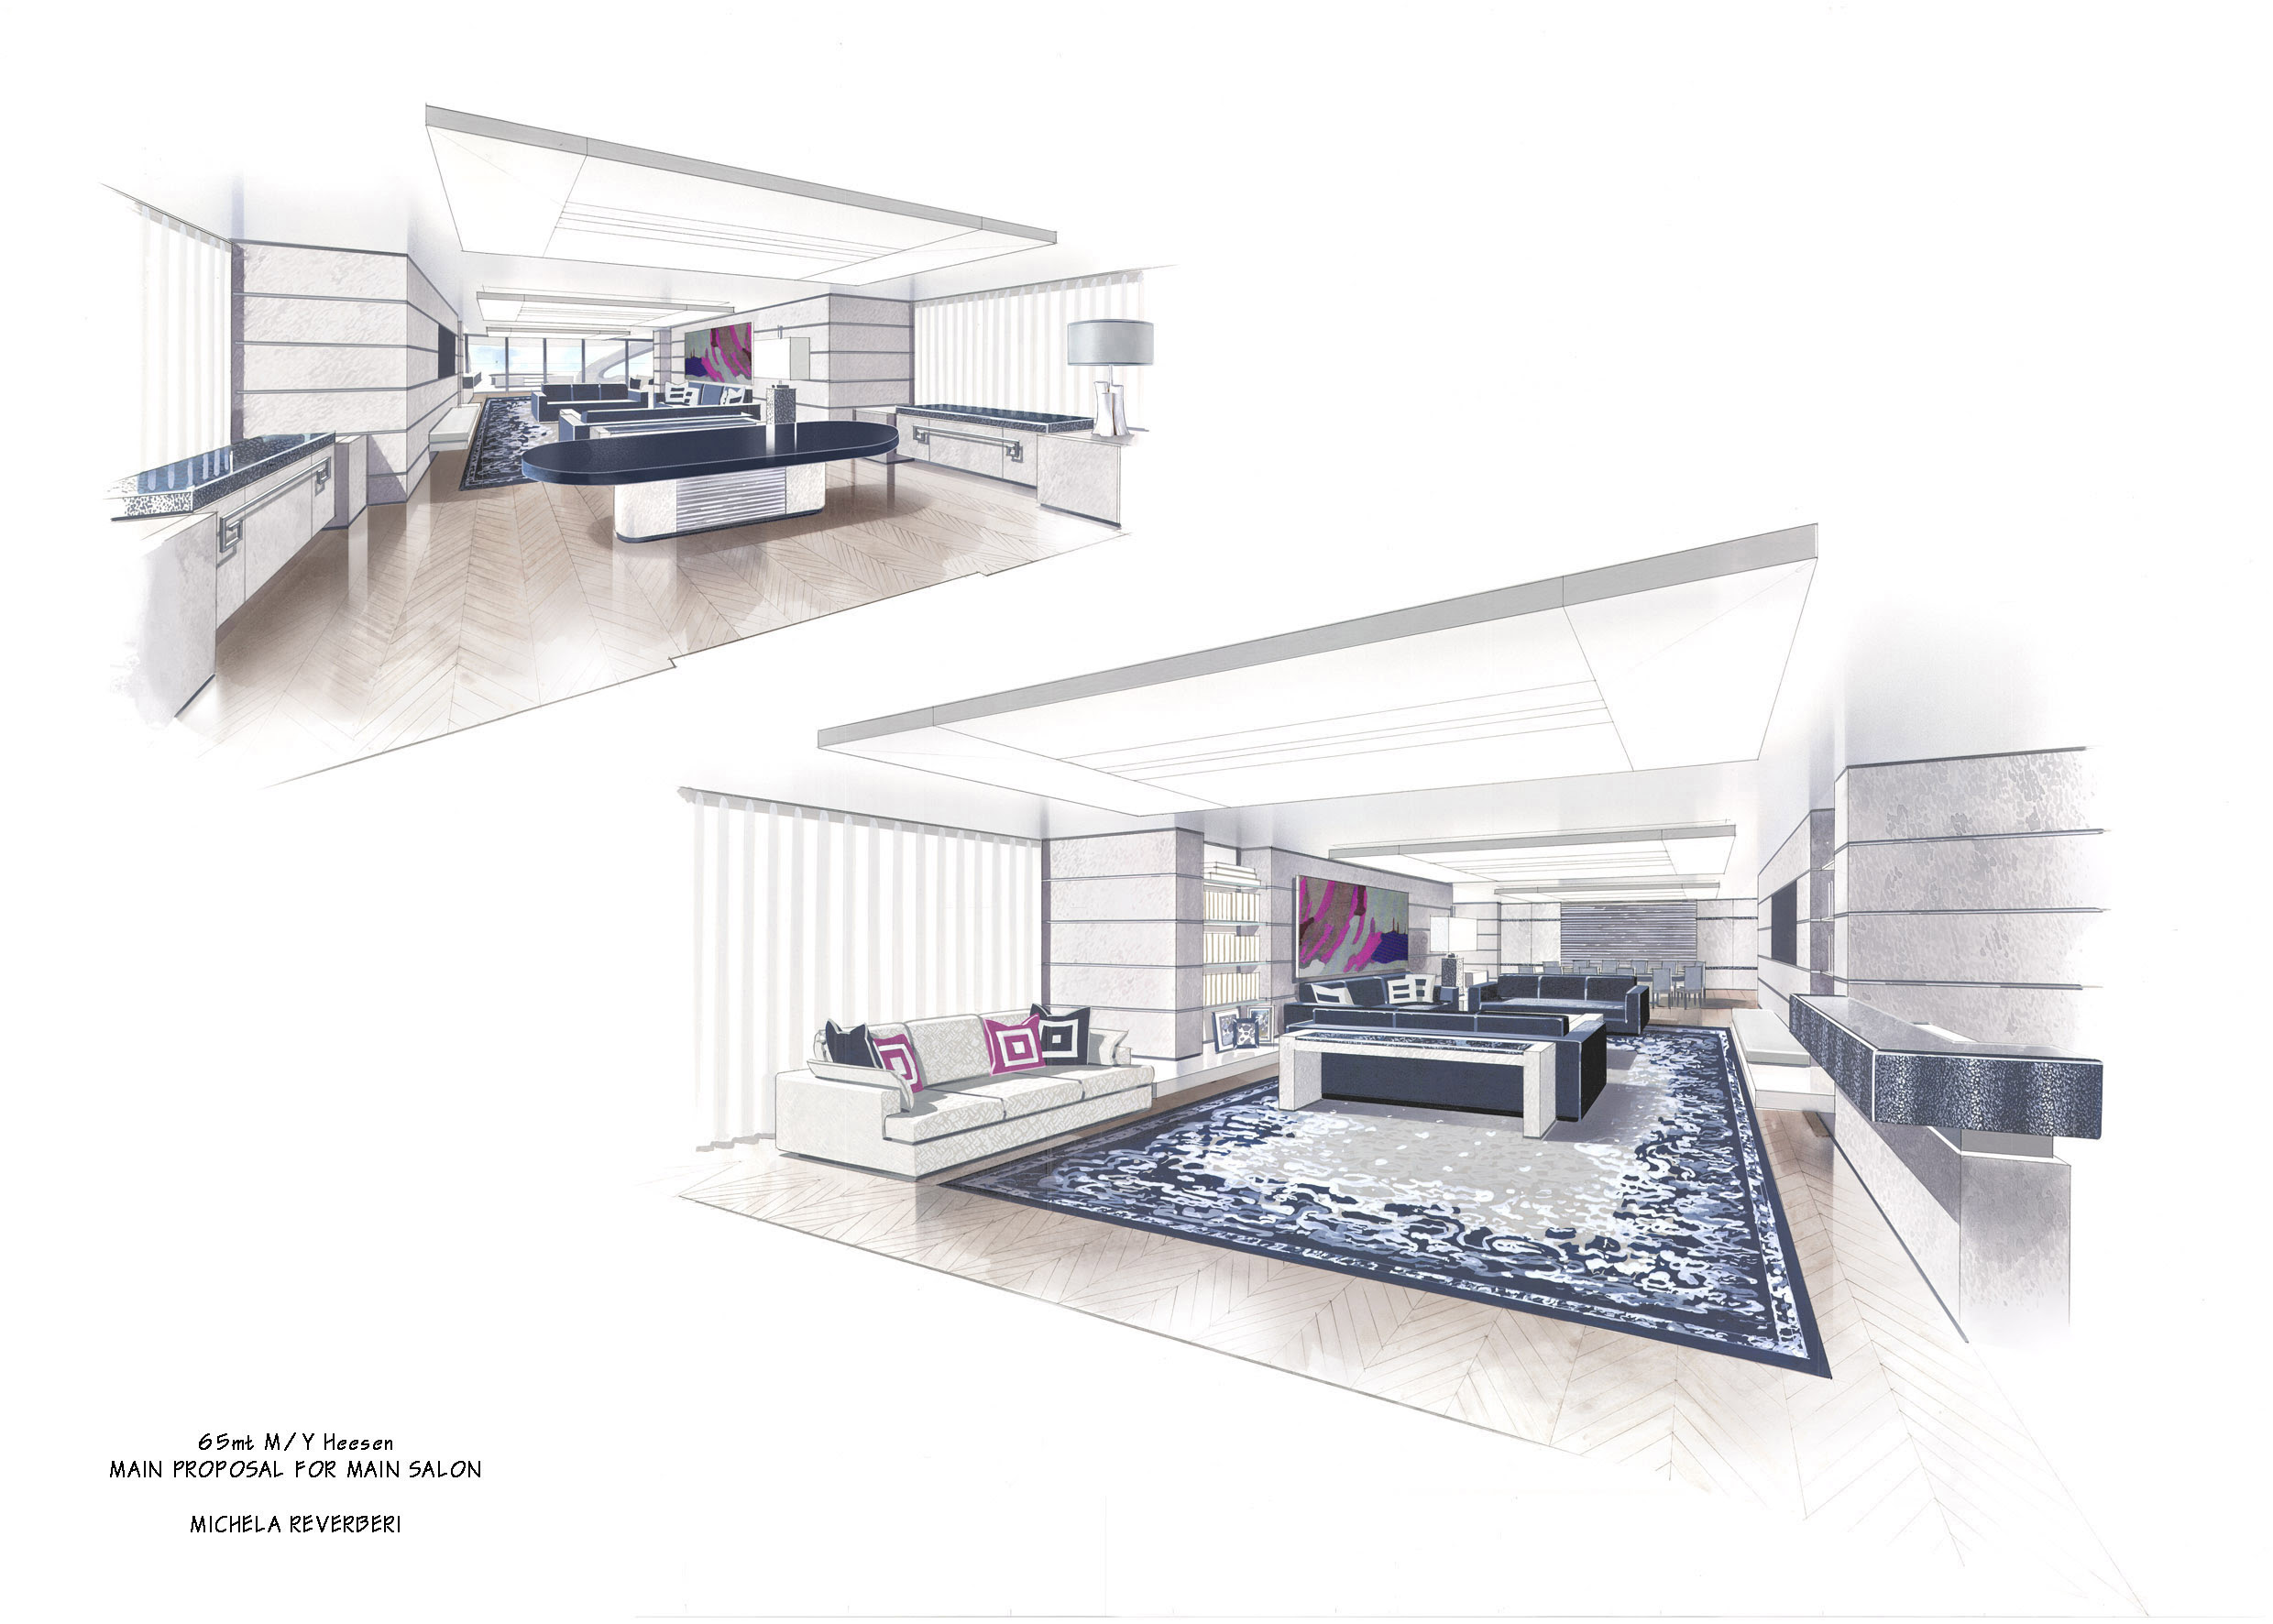 office showcase visual project power is to item of for an effective and so comfort portfolio home designer stylish archicgi asked interior a rendering this in the way design our